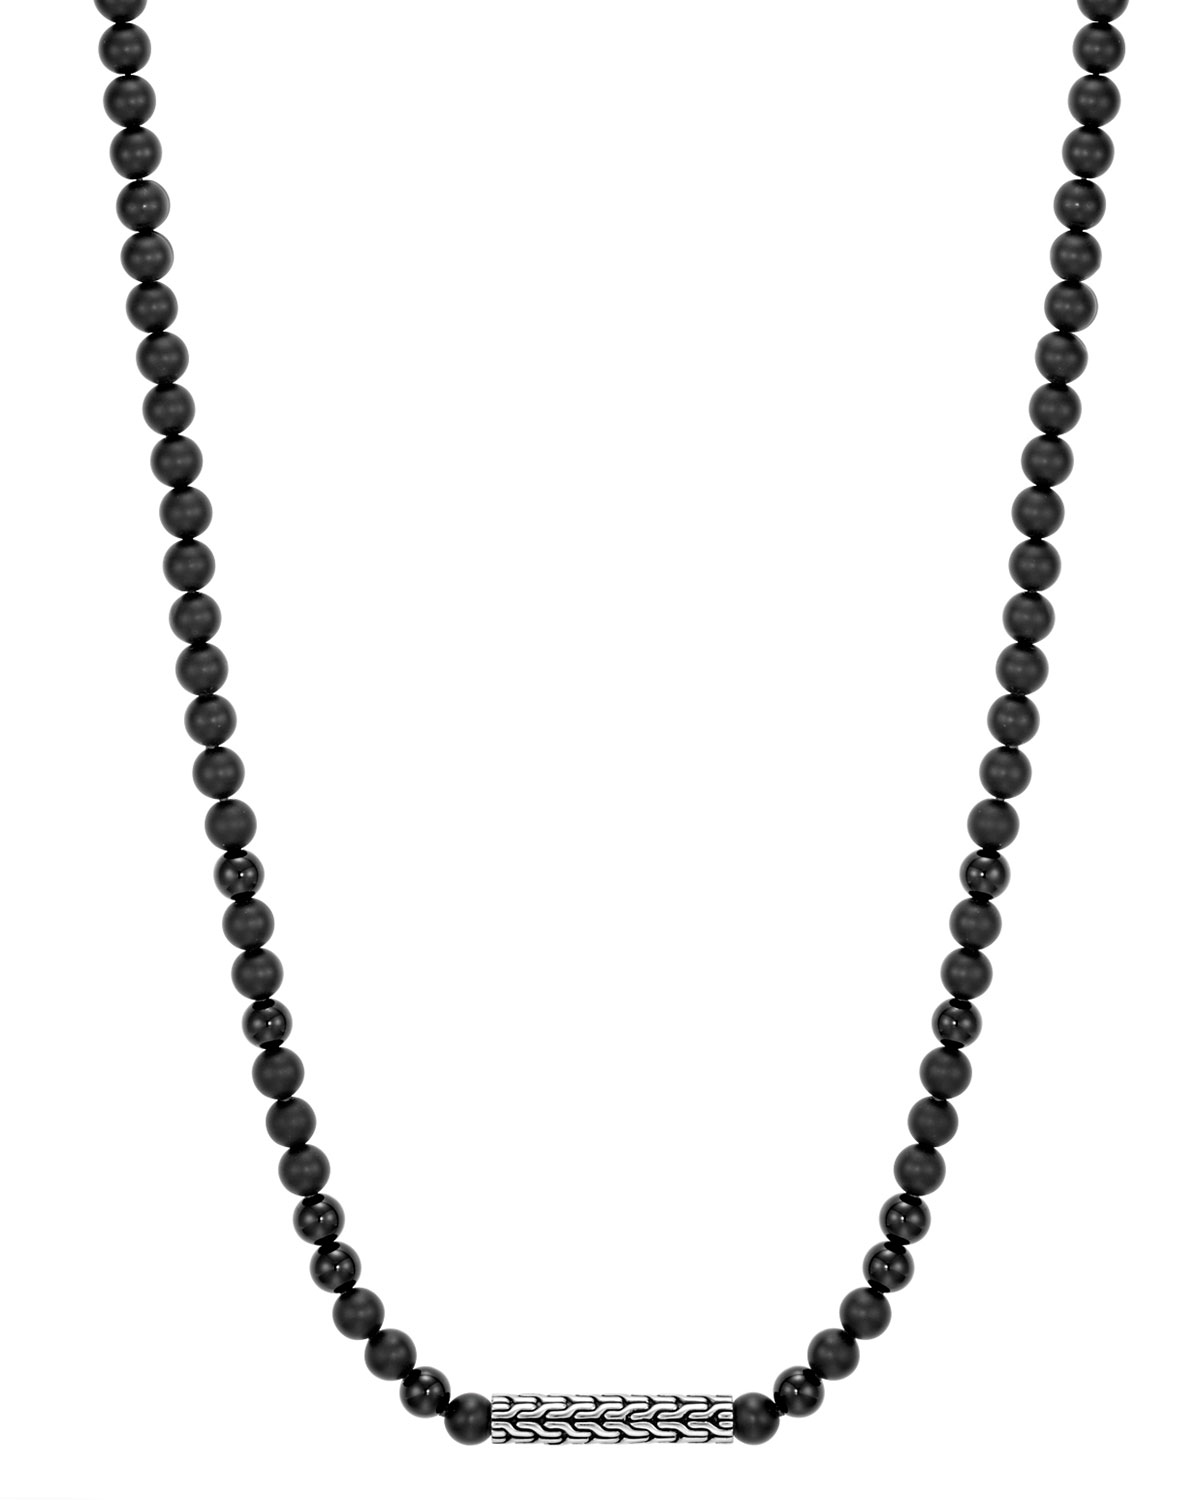 pendant index onyx black chains sterling silver genuine with floral necklace